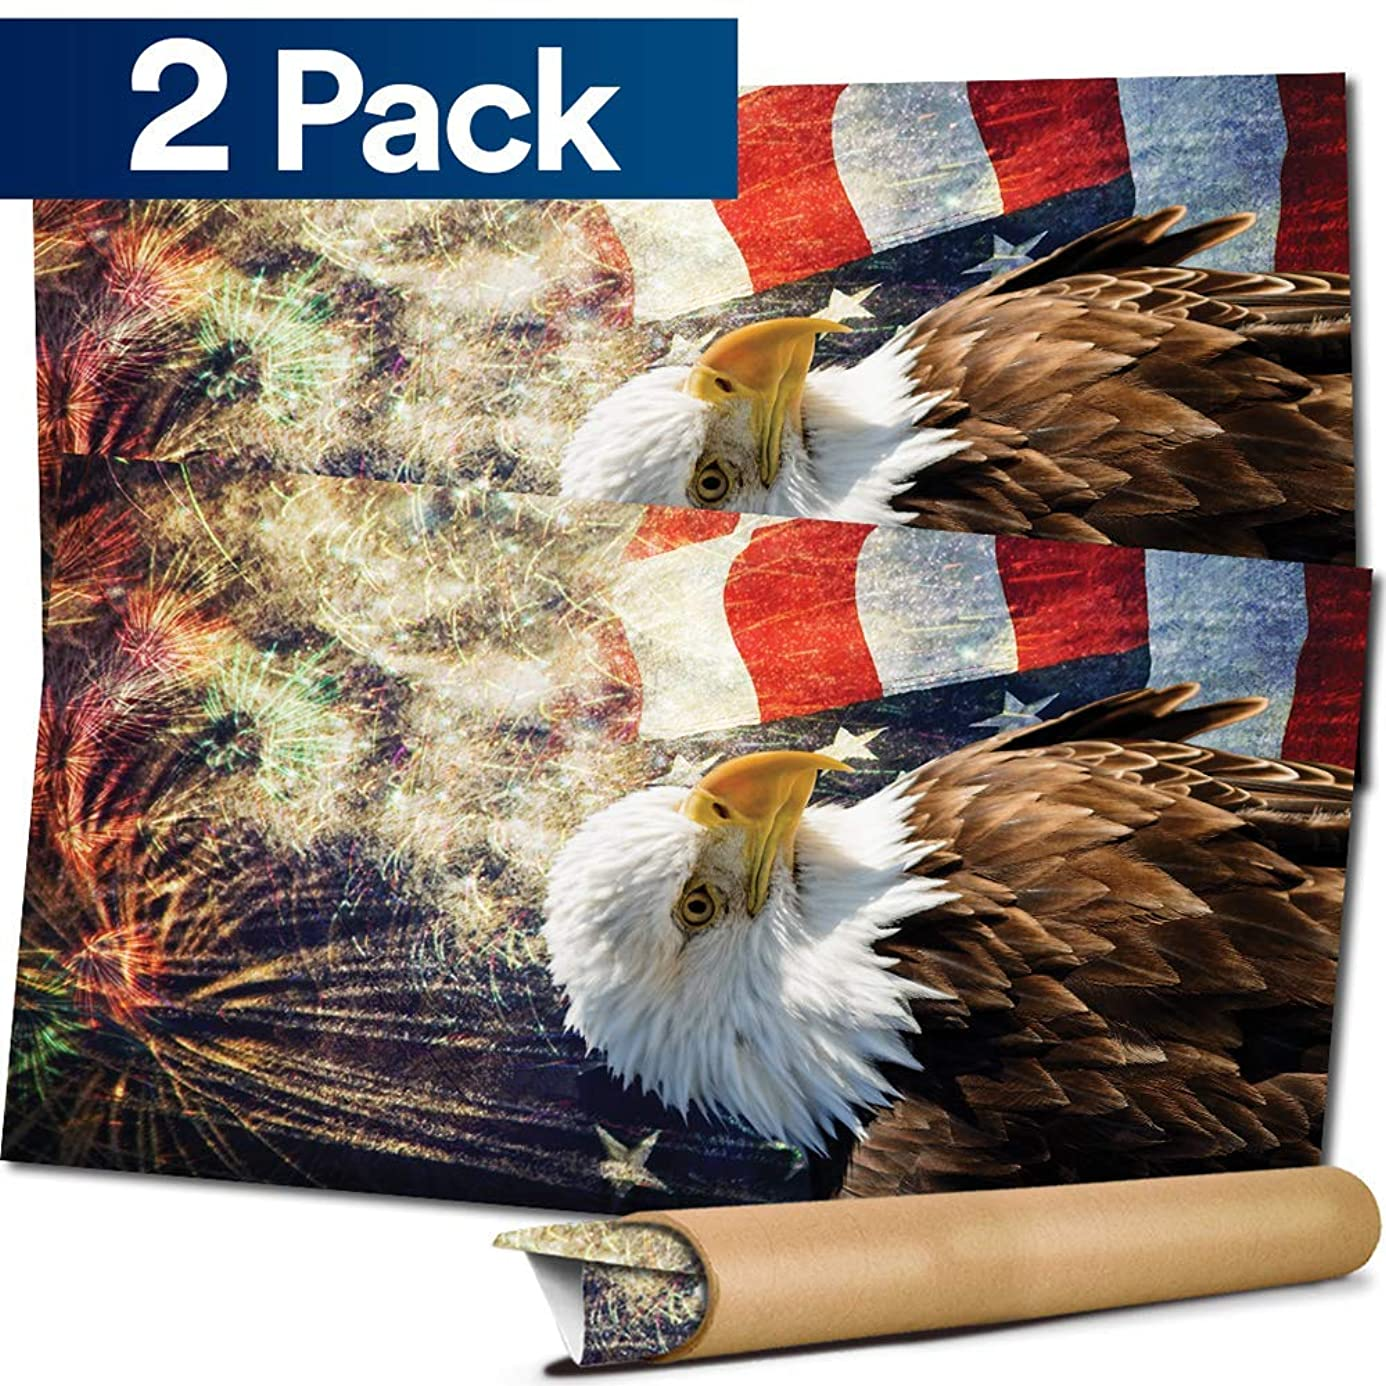 Cornhole Board Skin Wrap Decal - Vinyl Tournament Corn Hole Bean Bag Toss Sticker - Weather Resistant USA Flag Board Game - For Children Adults Colleges Festivals & Bars - 48.5x24.5 inches